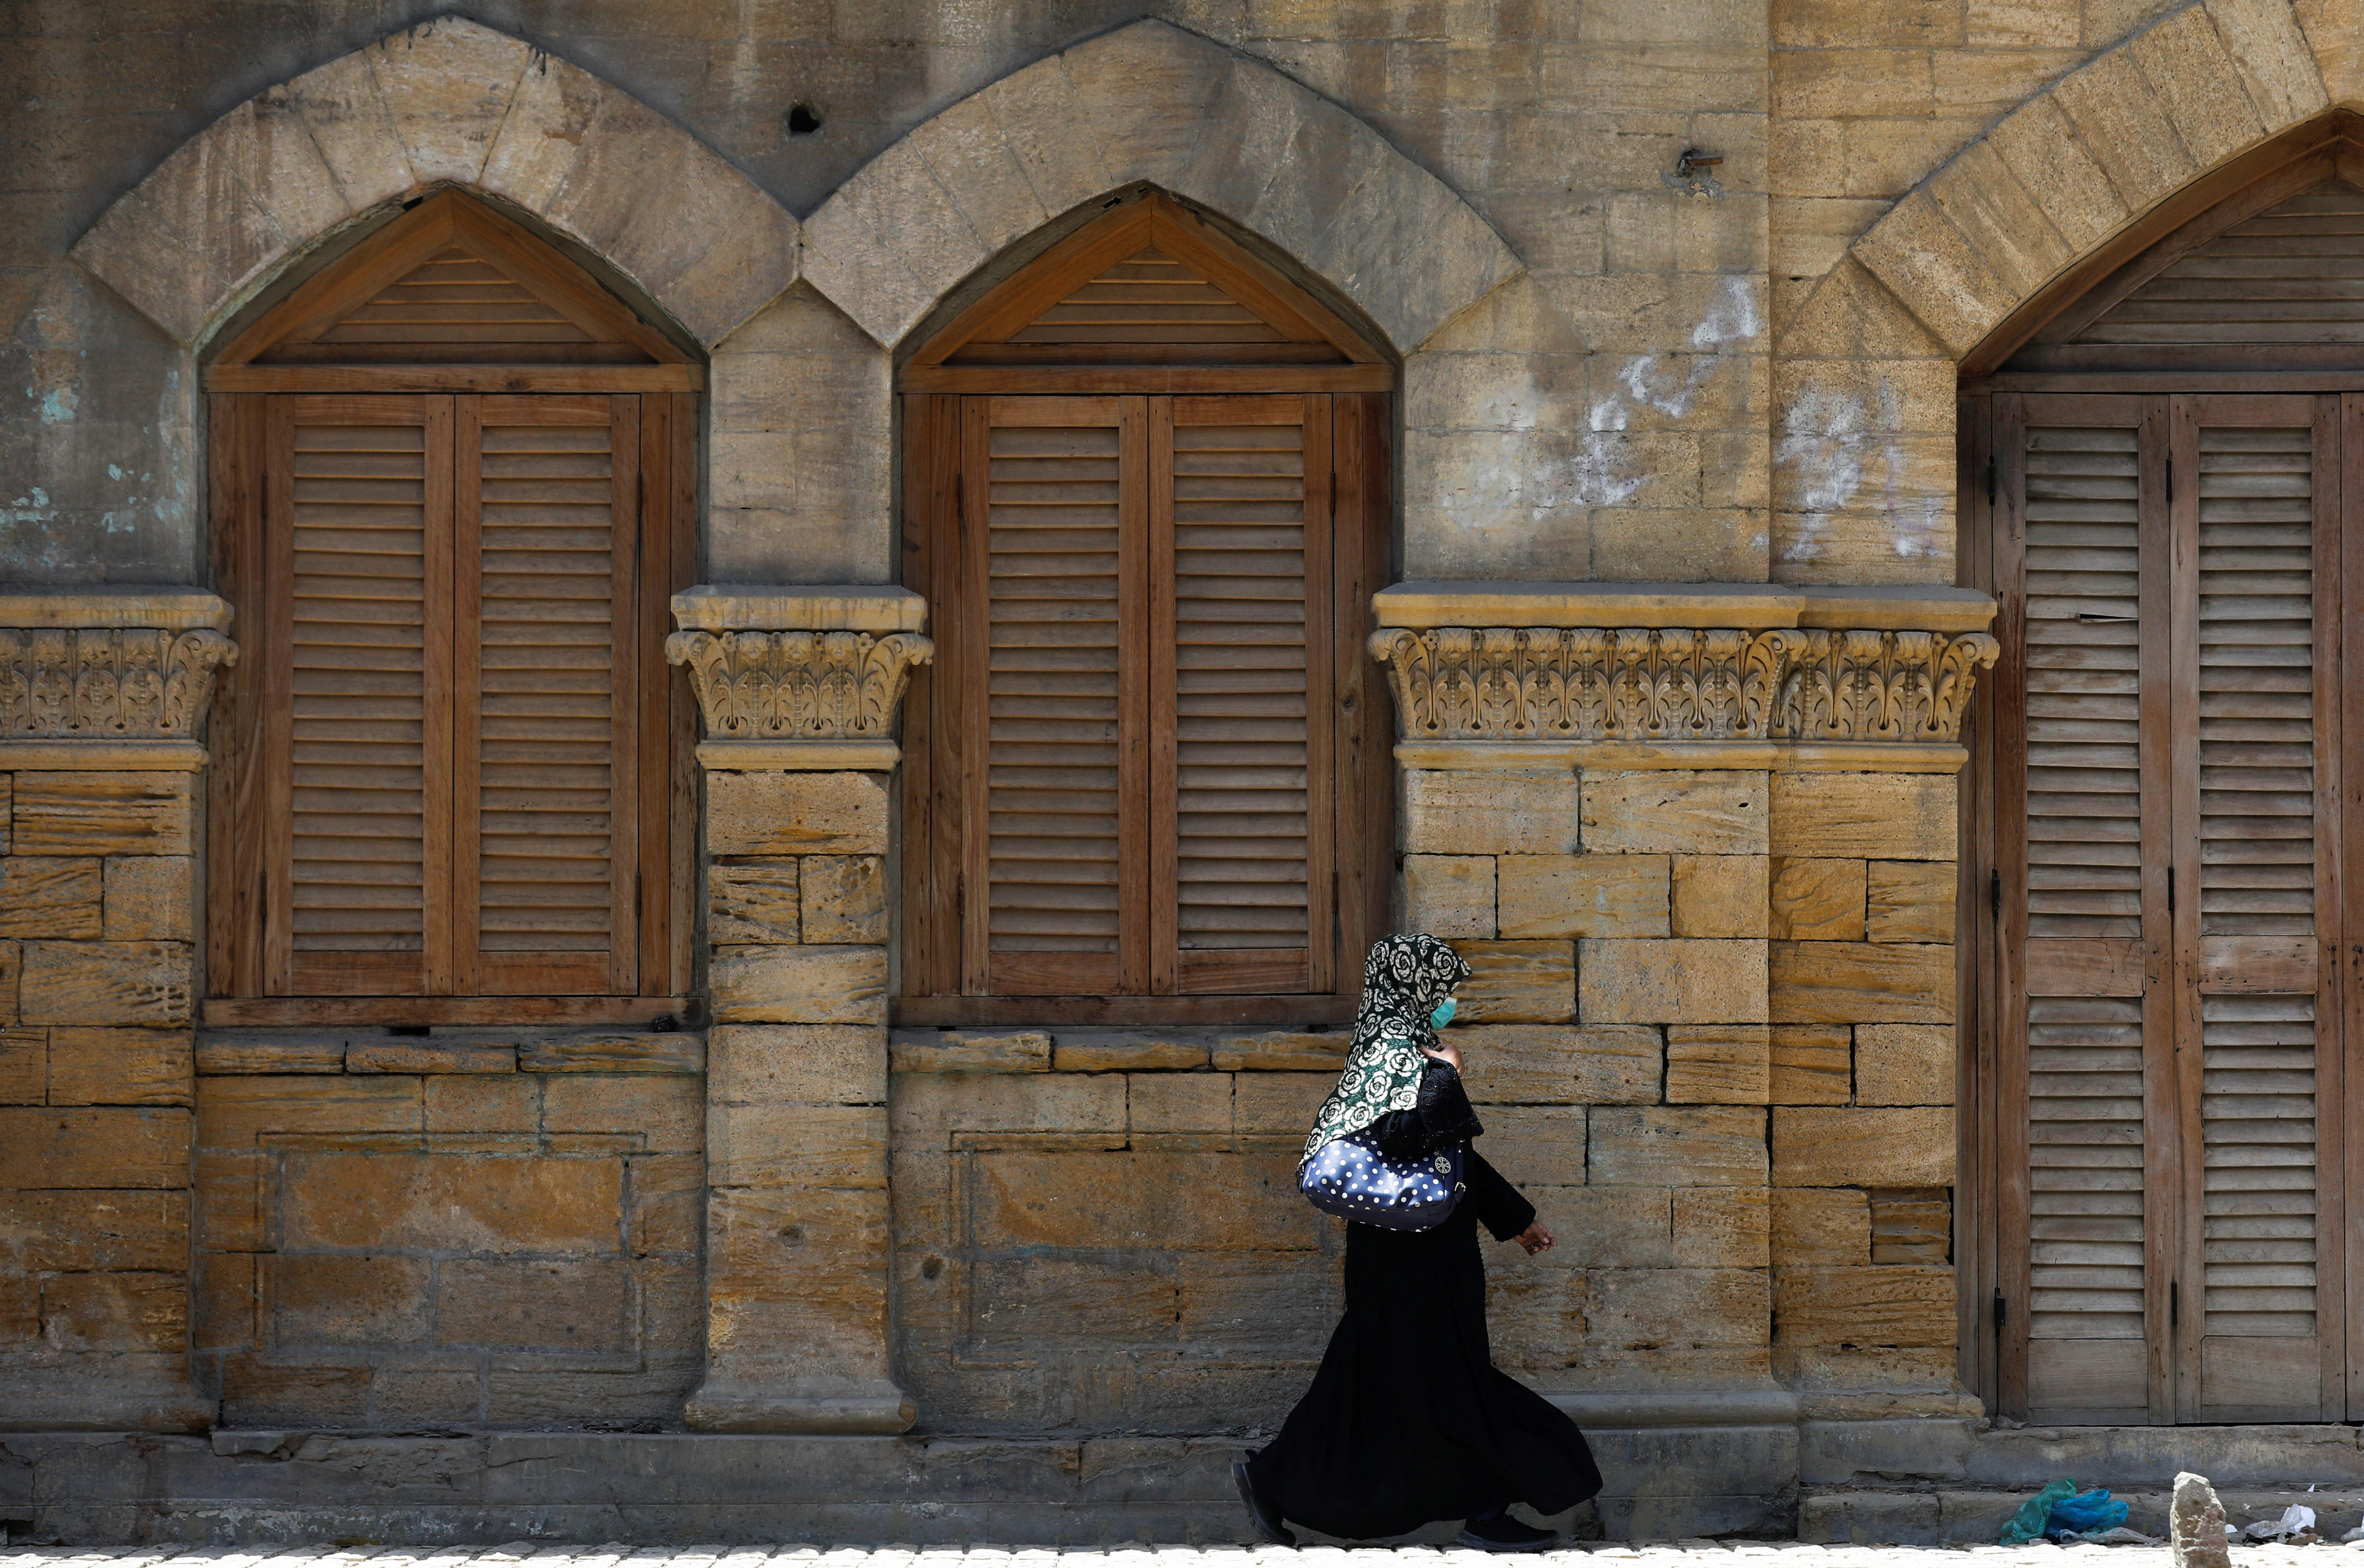 A woman wearing a protective mask walks in front of the Max Denso Hall and Library, built in memory of Max Denso during the British colonial period, as the outbreak of the coronavirus disease (COVID-19) continues, in Karachi, Pakistan April 23, 2021. REUTERS/Akhtar Soomro